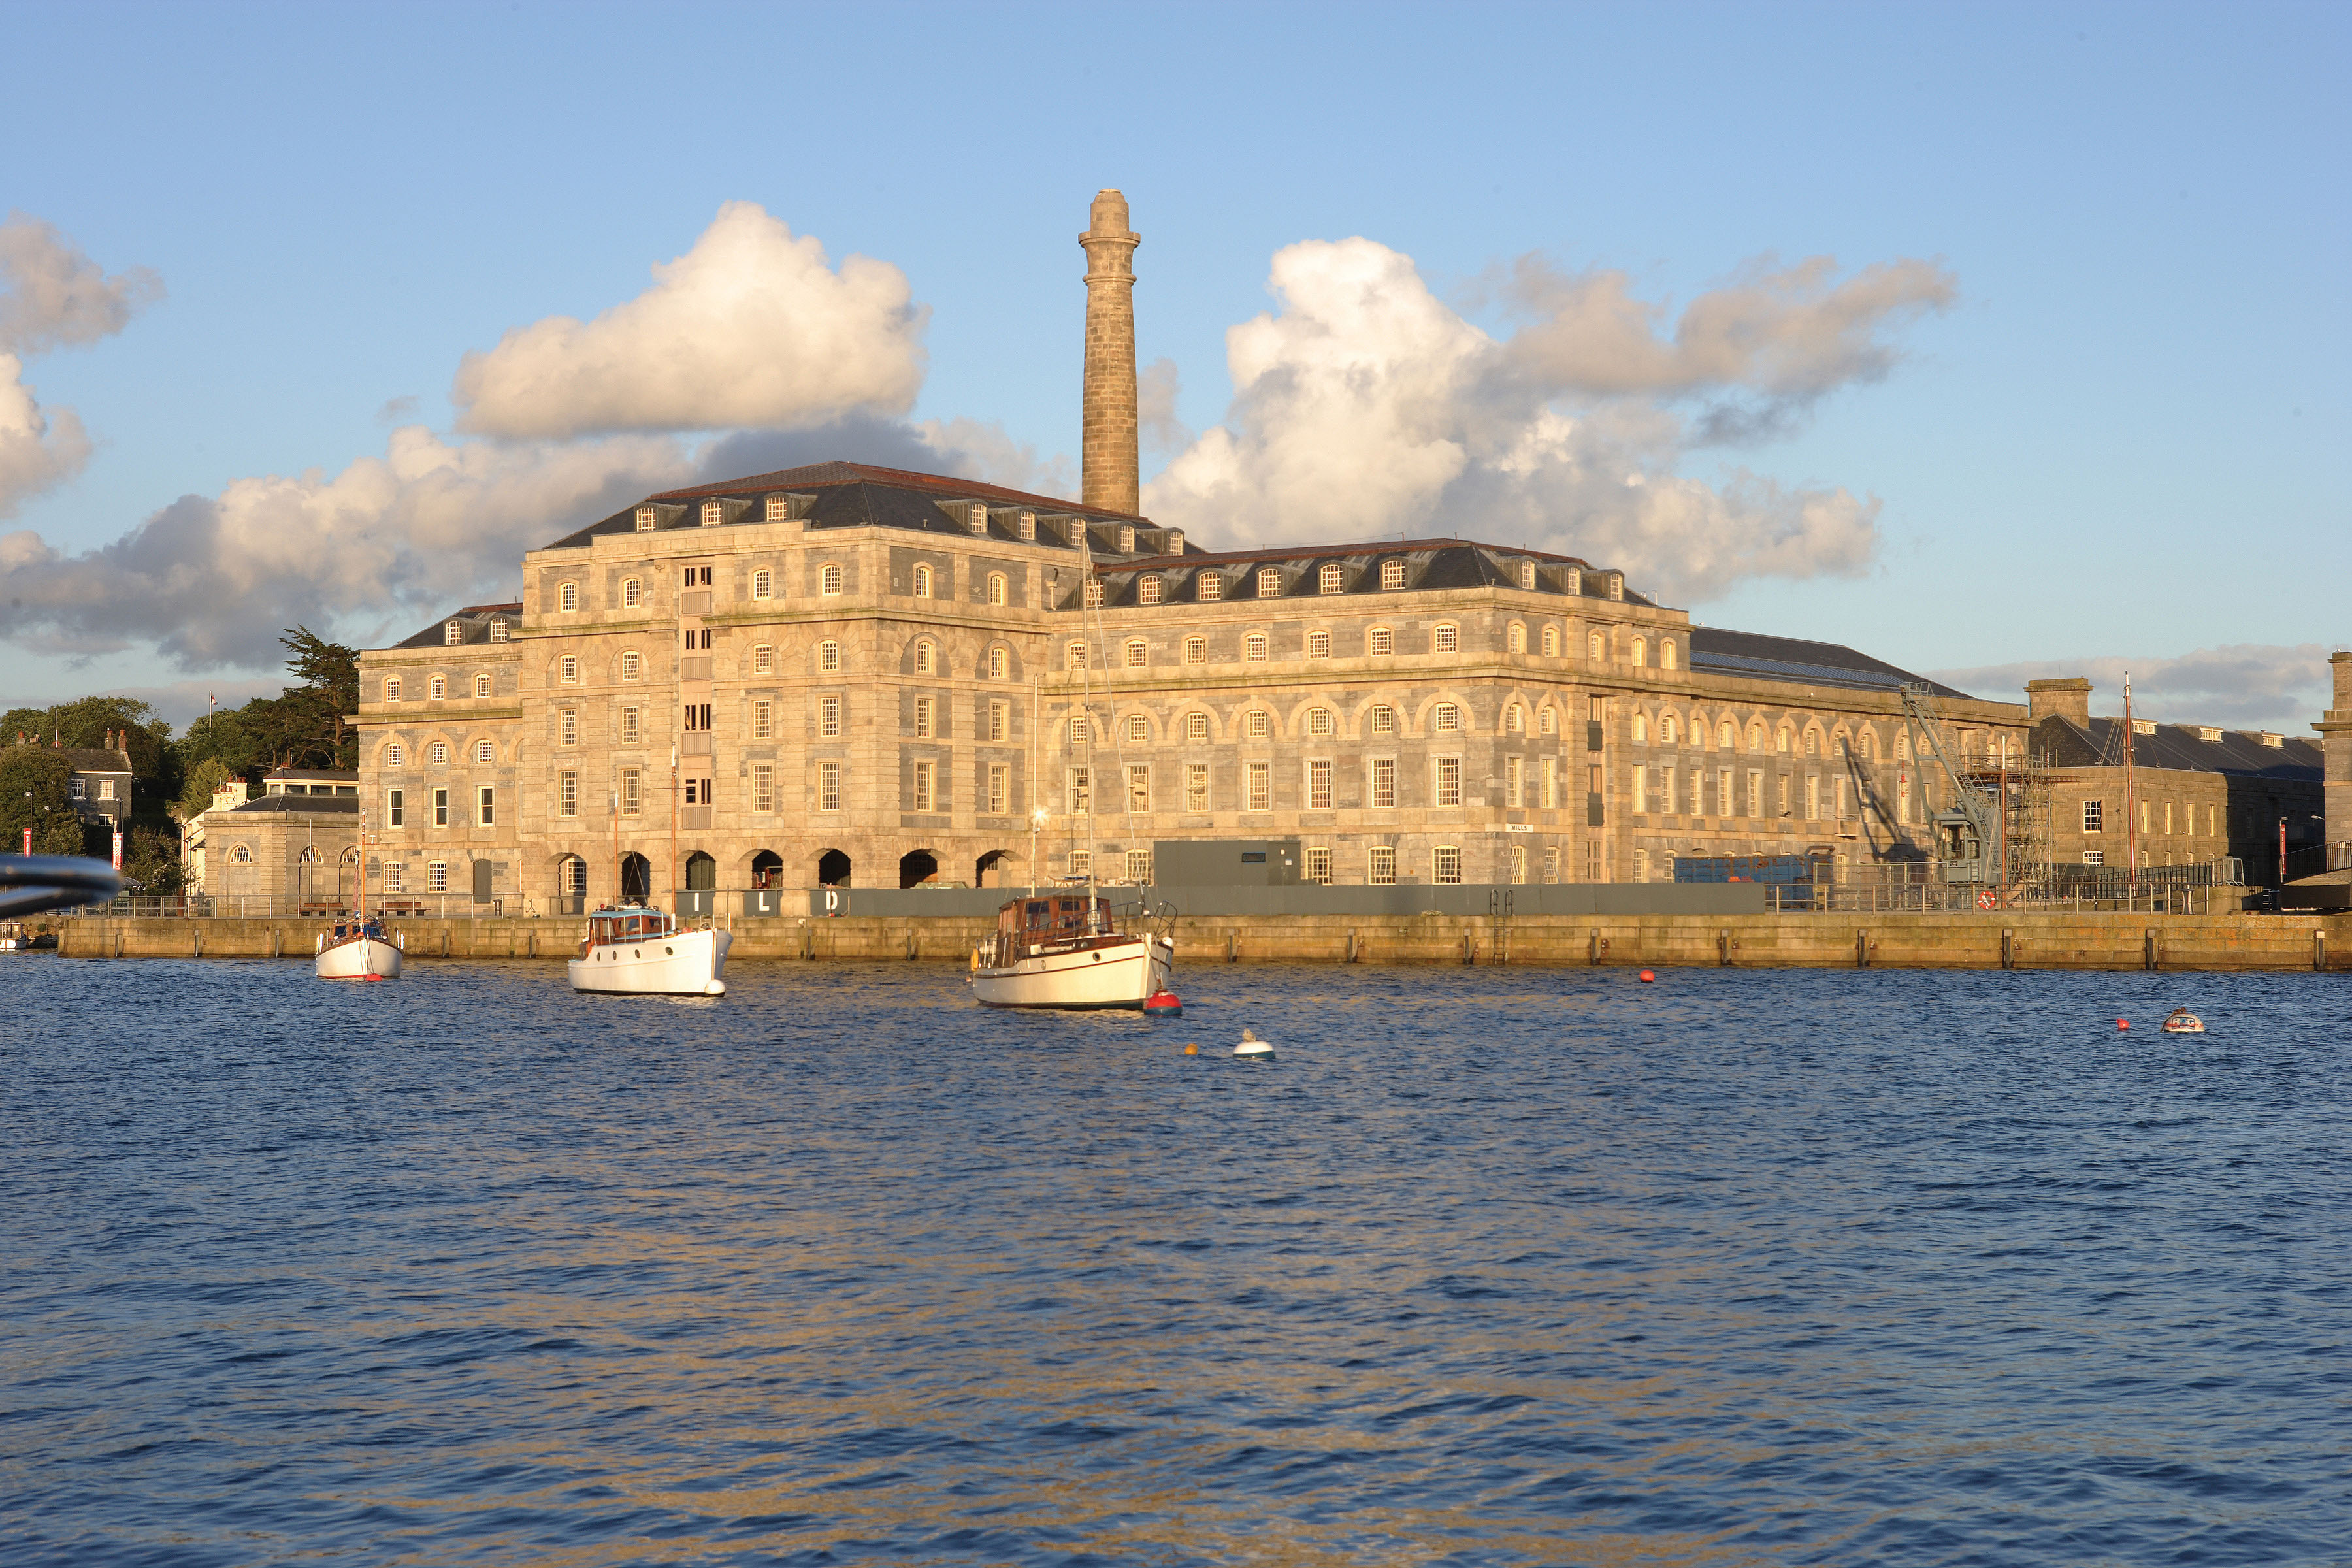 Attractions and Places to Visit in Plymouth